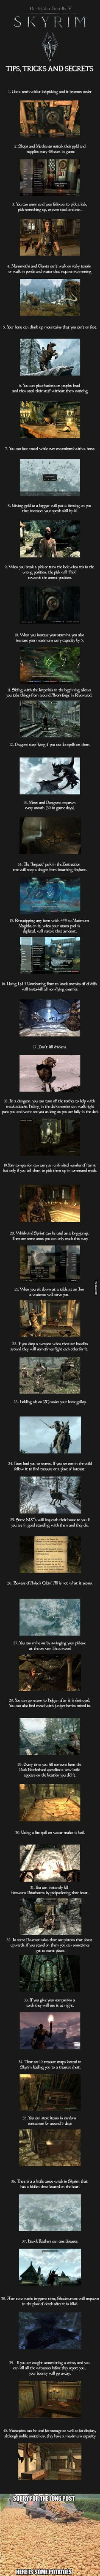 40 dicas e truques de skyrim. De nada. 40 tricks and secrets about skyrim. U r welcome.